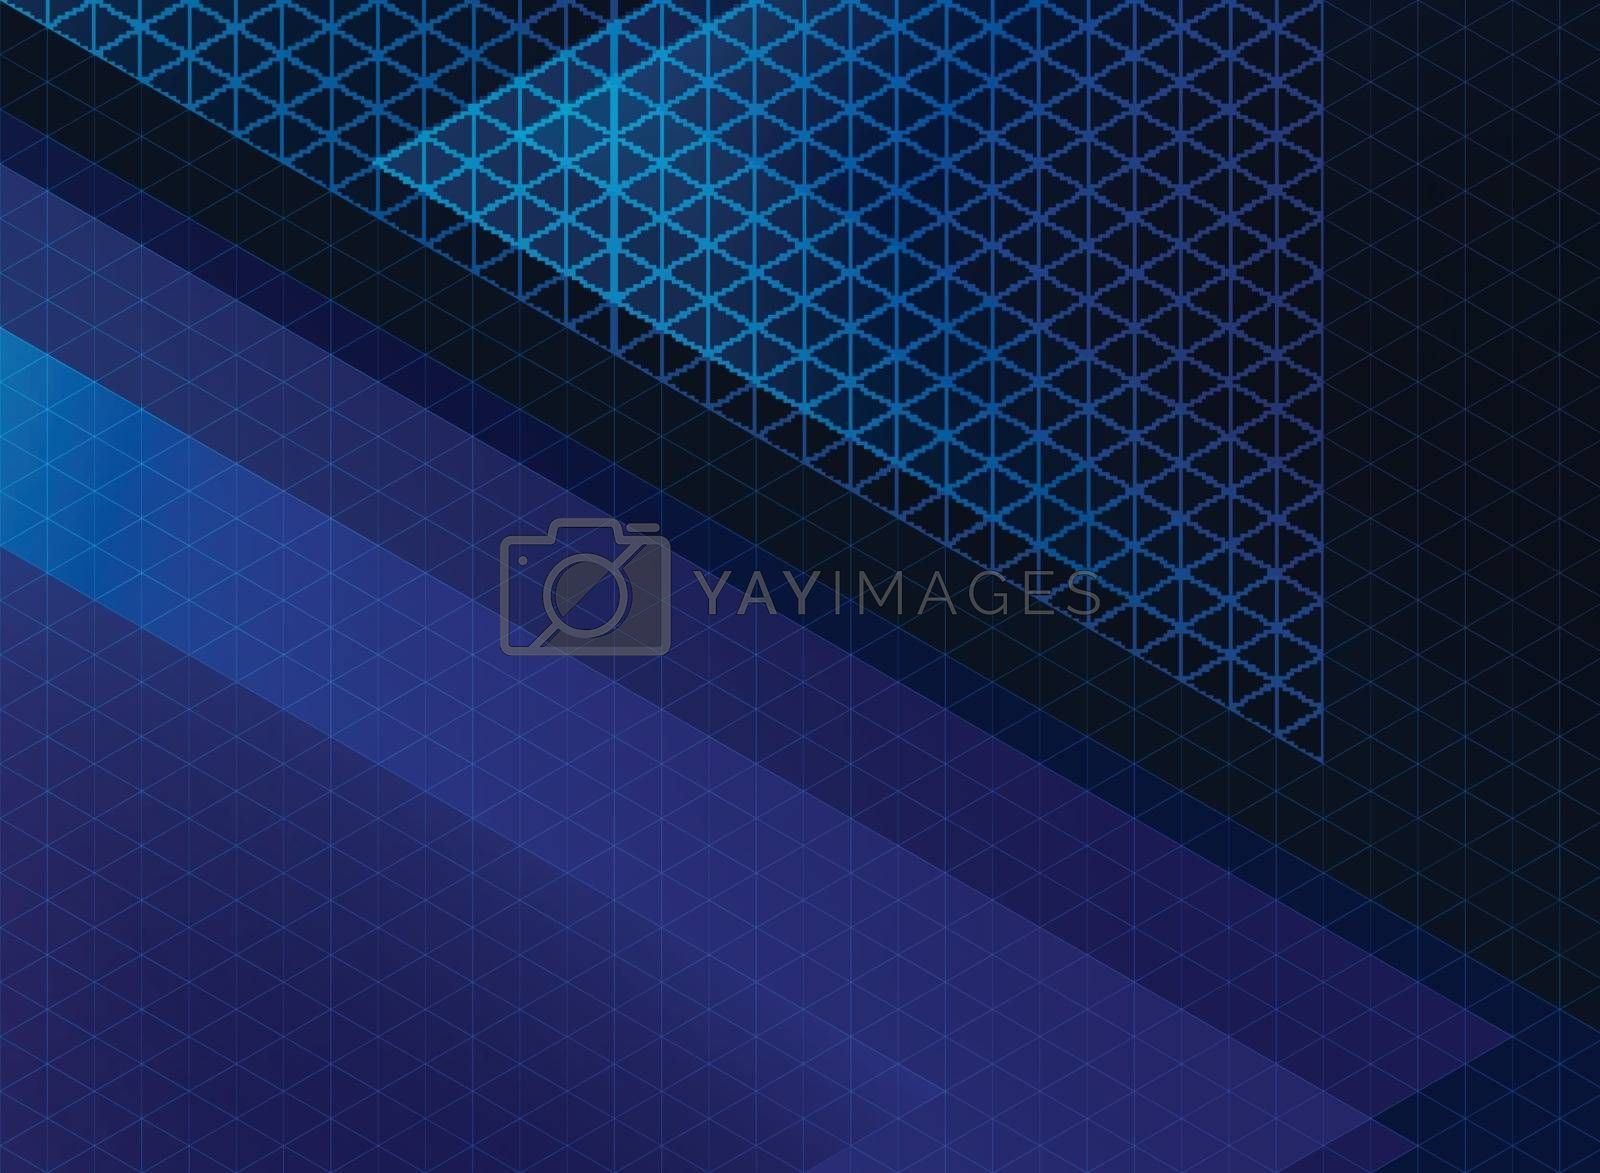 Abstract technology blue triangles pattern on dark background. Vector illustration